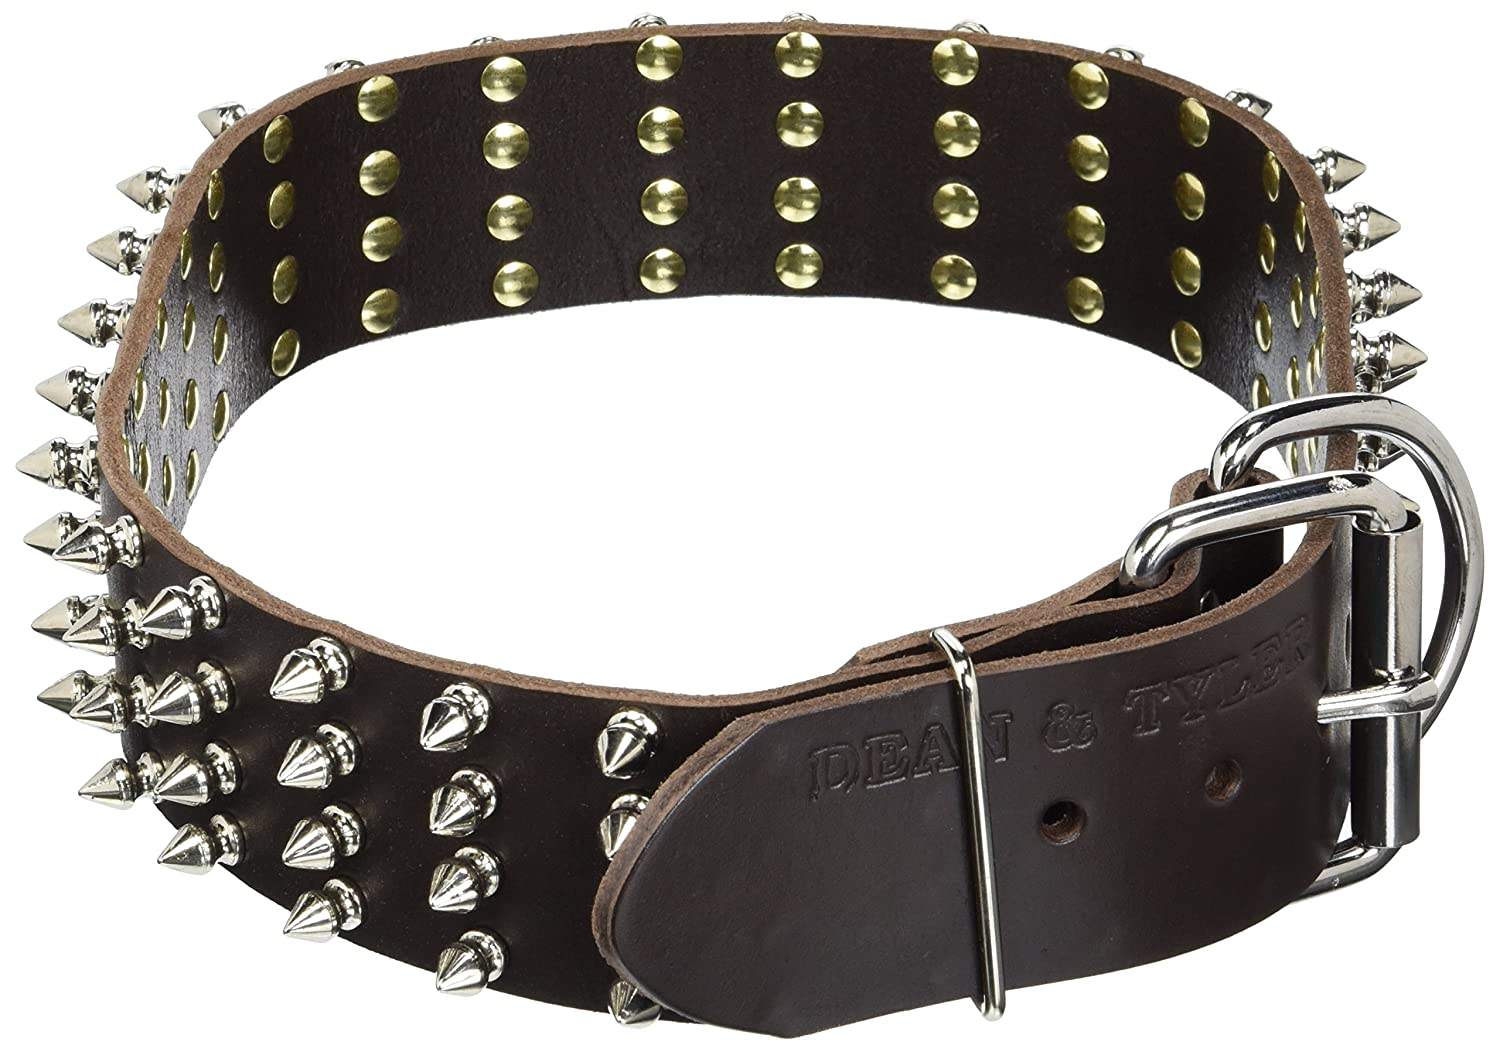 Dean and Tyler 4 Row Spikes , Extra Wide Dog Collar with Strong Nickel Spikes Brown Size 32-Inch by 2-1 4-Inch Fits Neck 30-Inch to 34-Inch